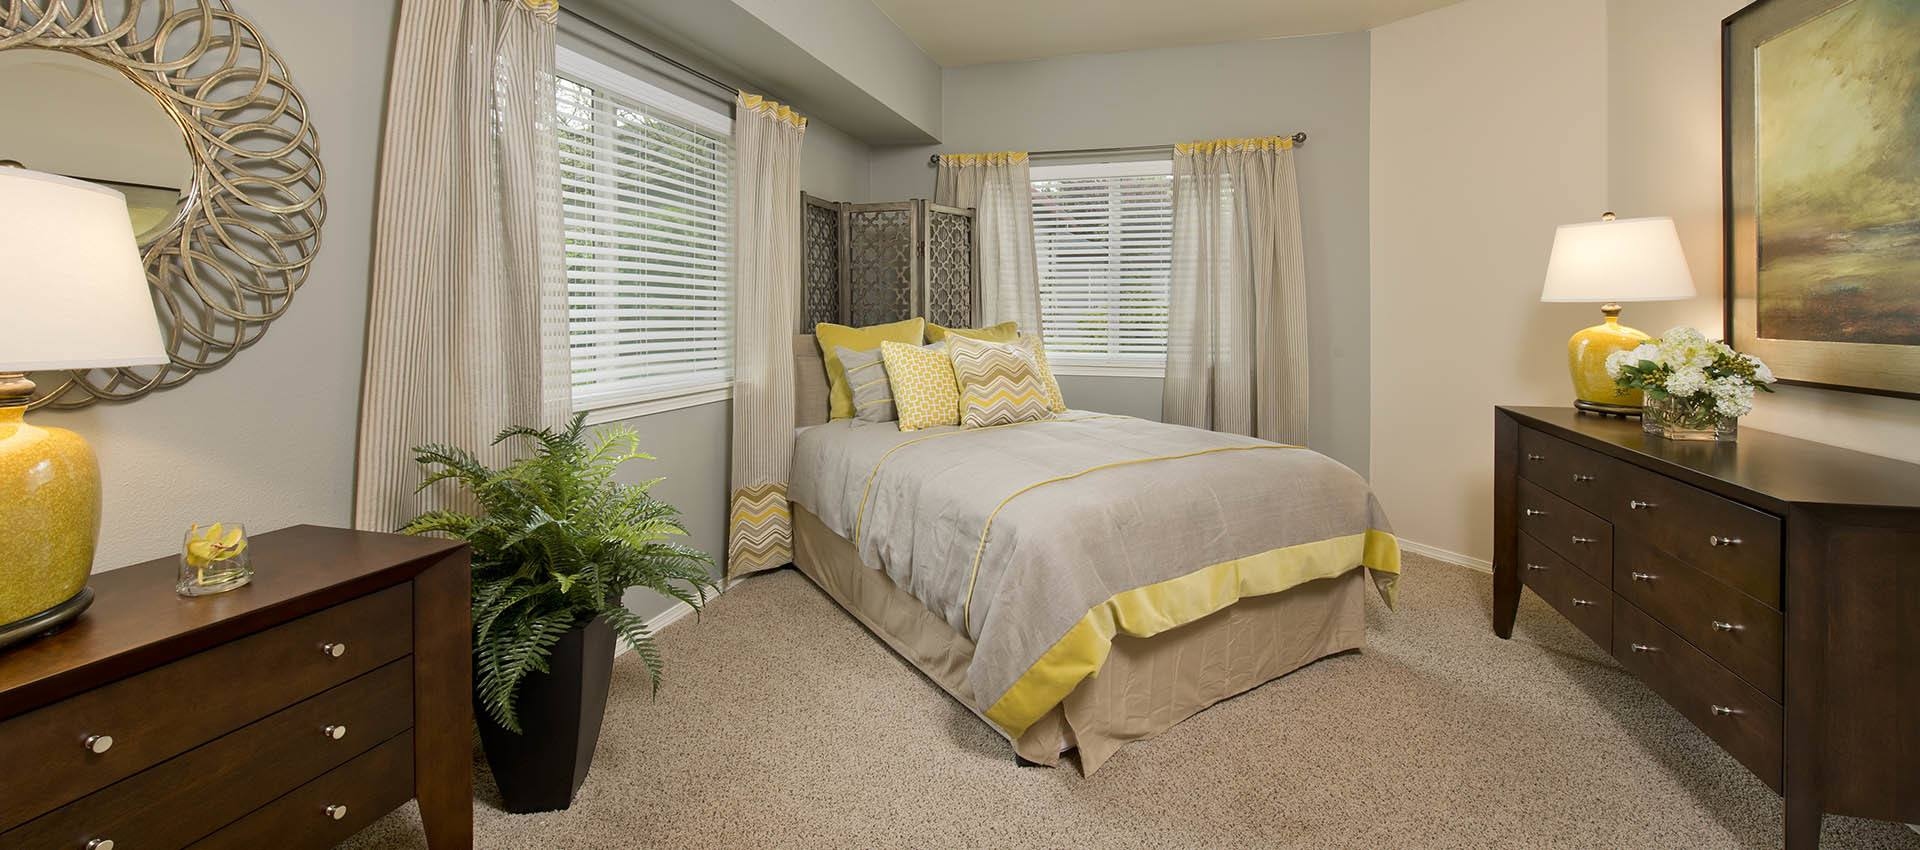 Spacious Bedroom at Altamont Summit in Happy Valley, OR